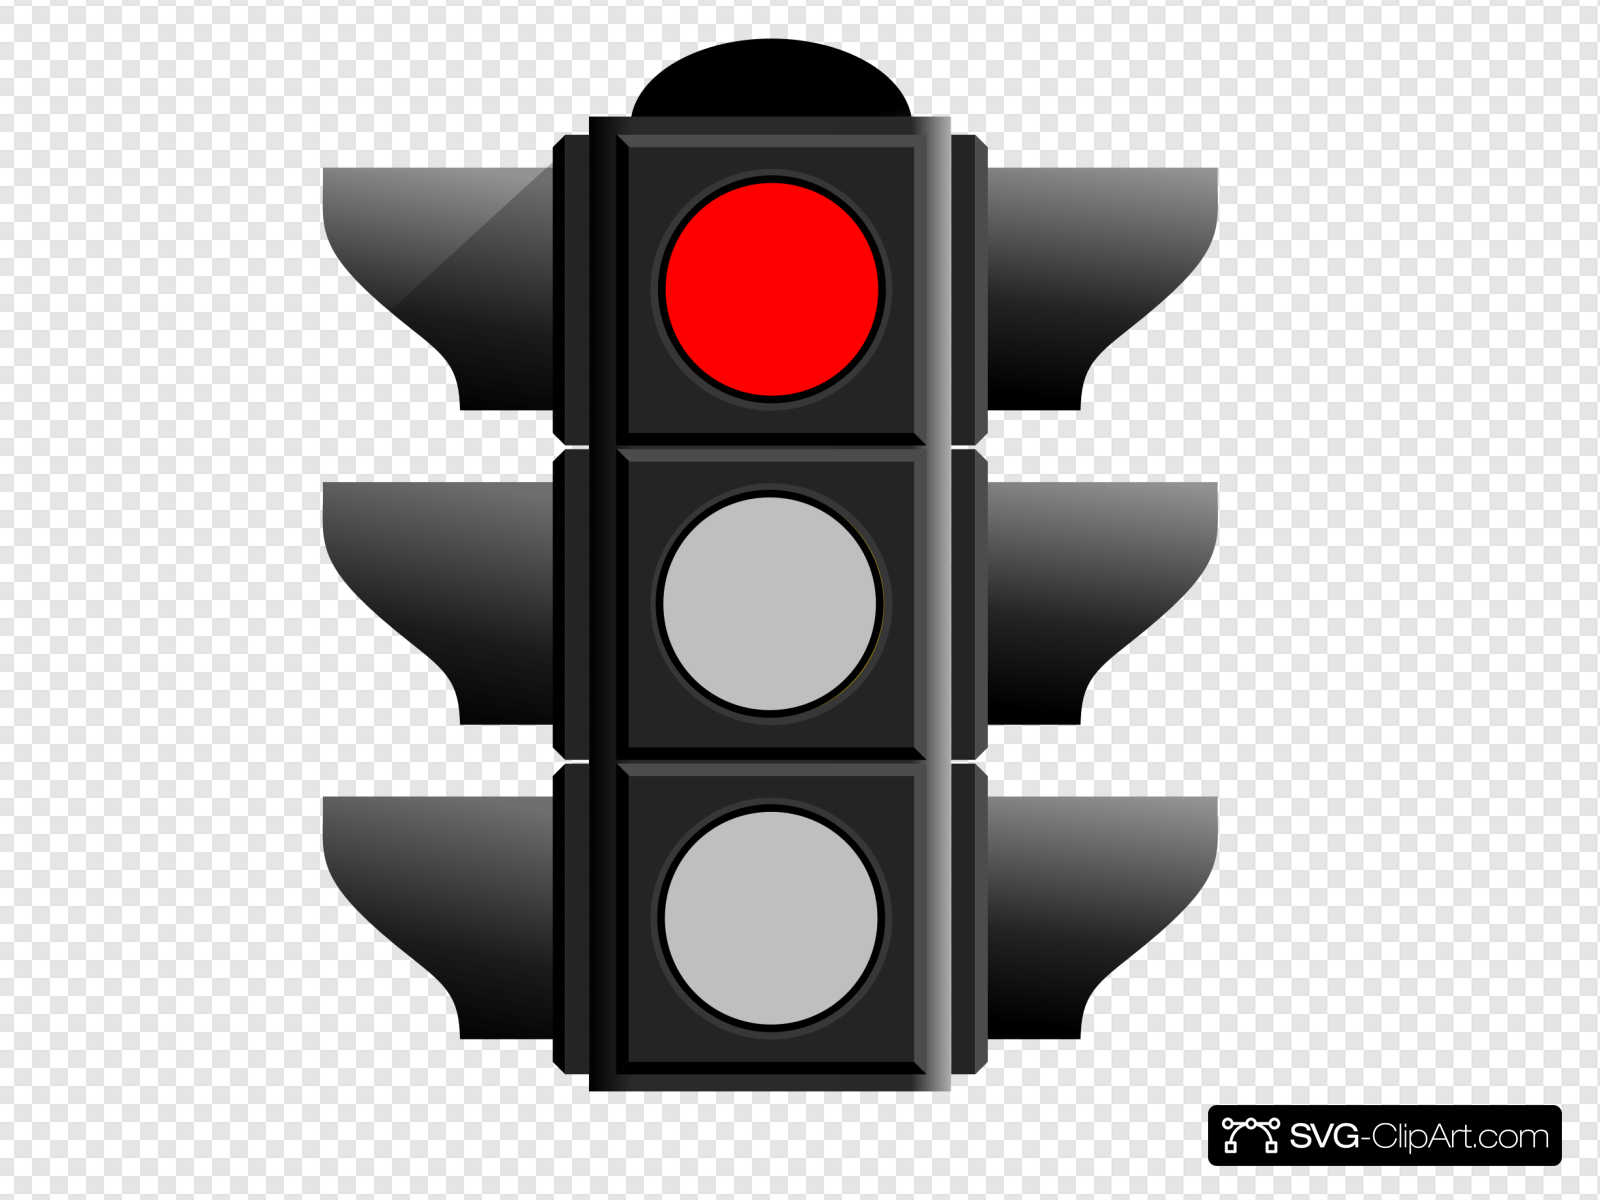 Red Traffic Light Clip art, Icon and SVG.